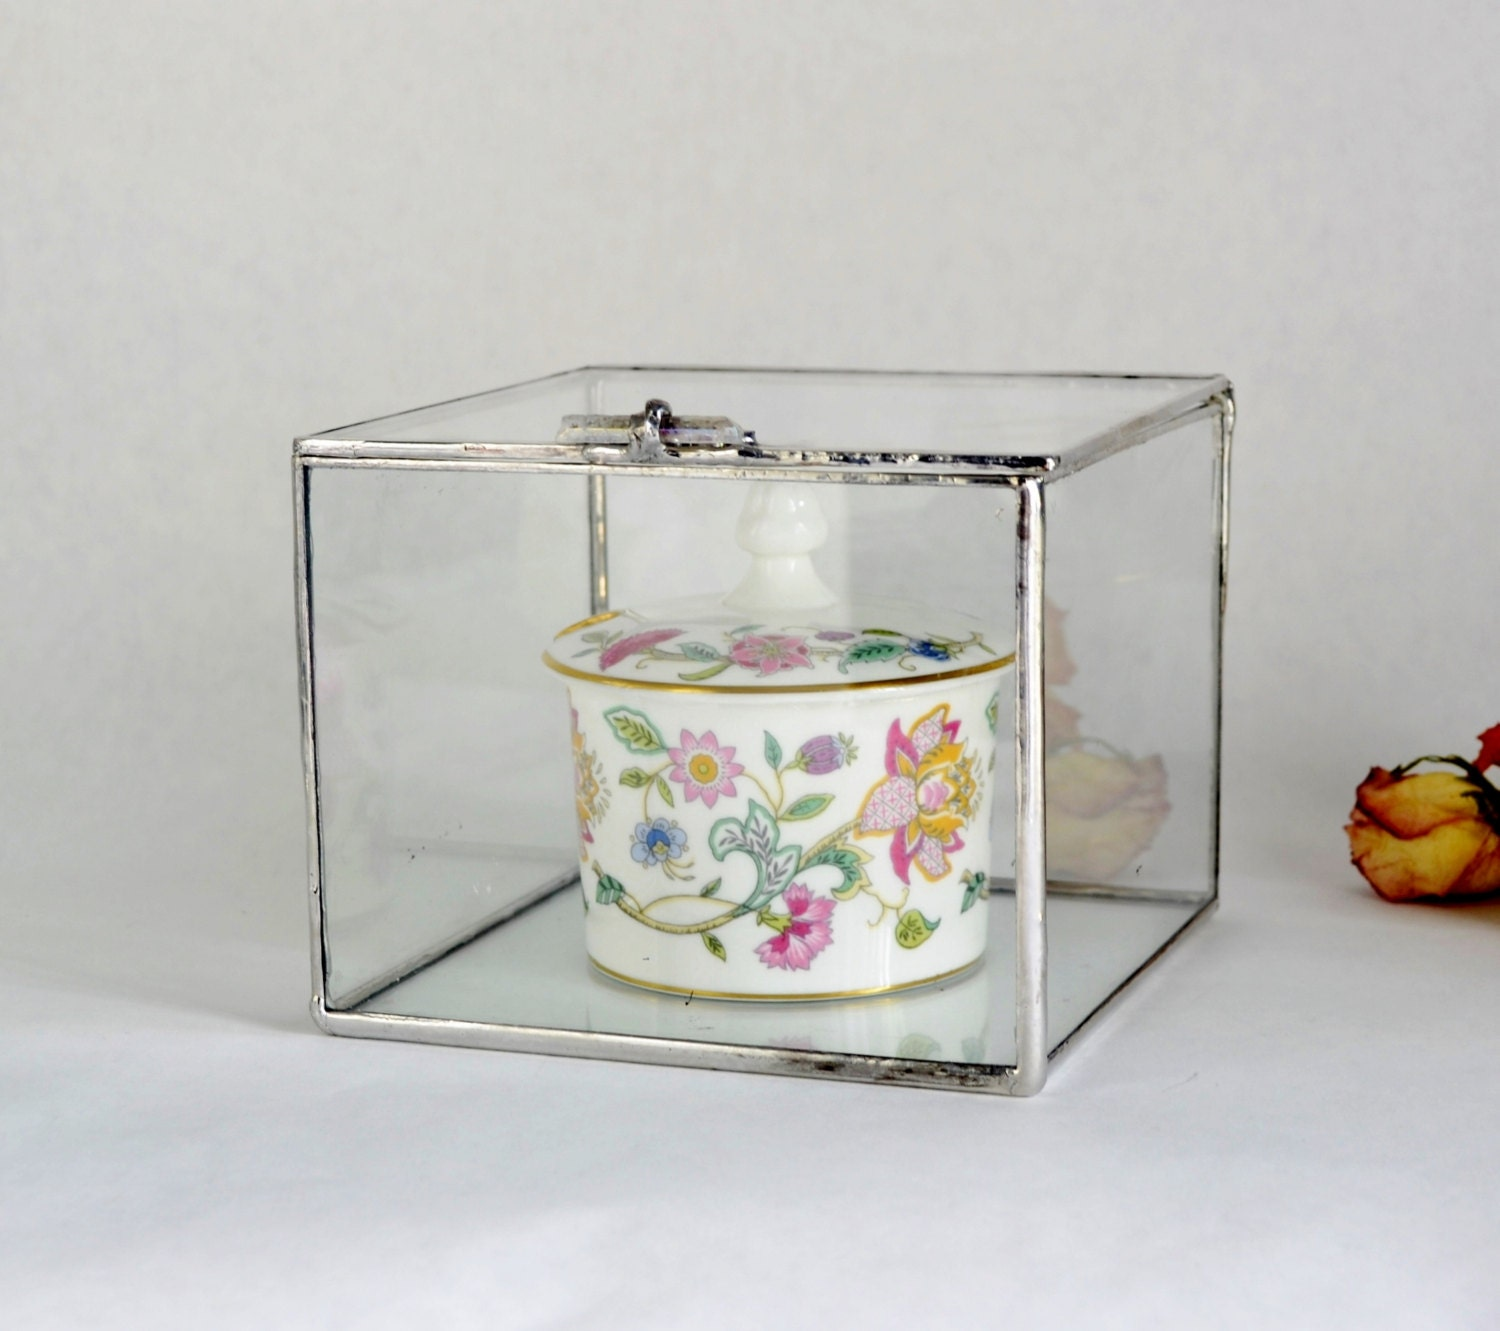 You searched for: glass display box! Etsy is the home to thousands of handmade, vintage, and one-of-a-kind products and gifts related to your search. No matter what you're looking for or where you are in the world, our global marketplace of sellers can help you find unique and affordable options. Let's get started!